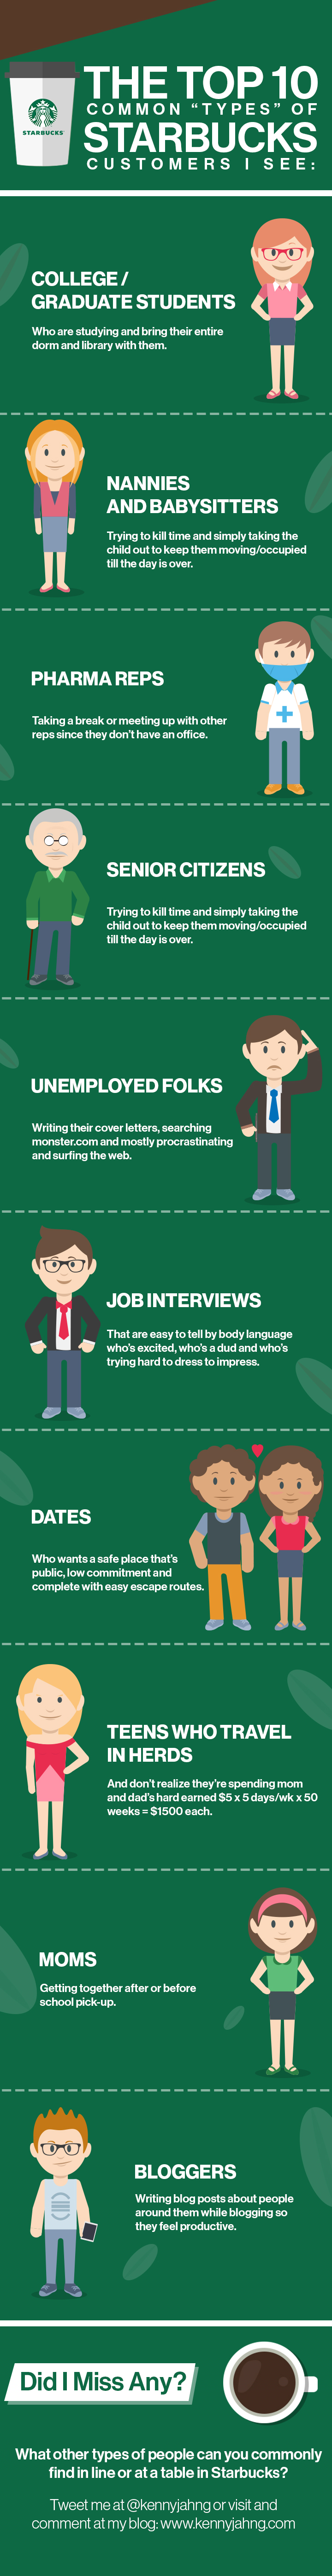 10 Types of People You Find At Starbucks